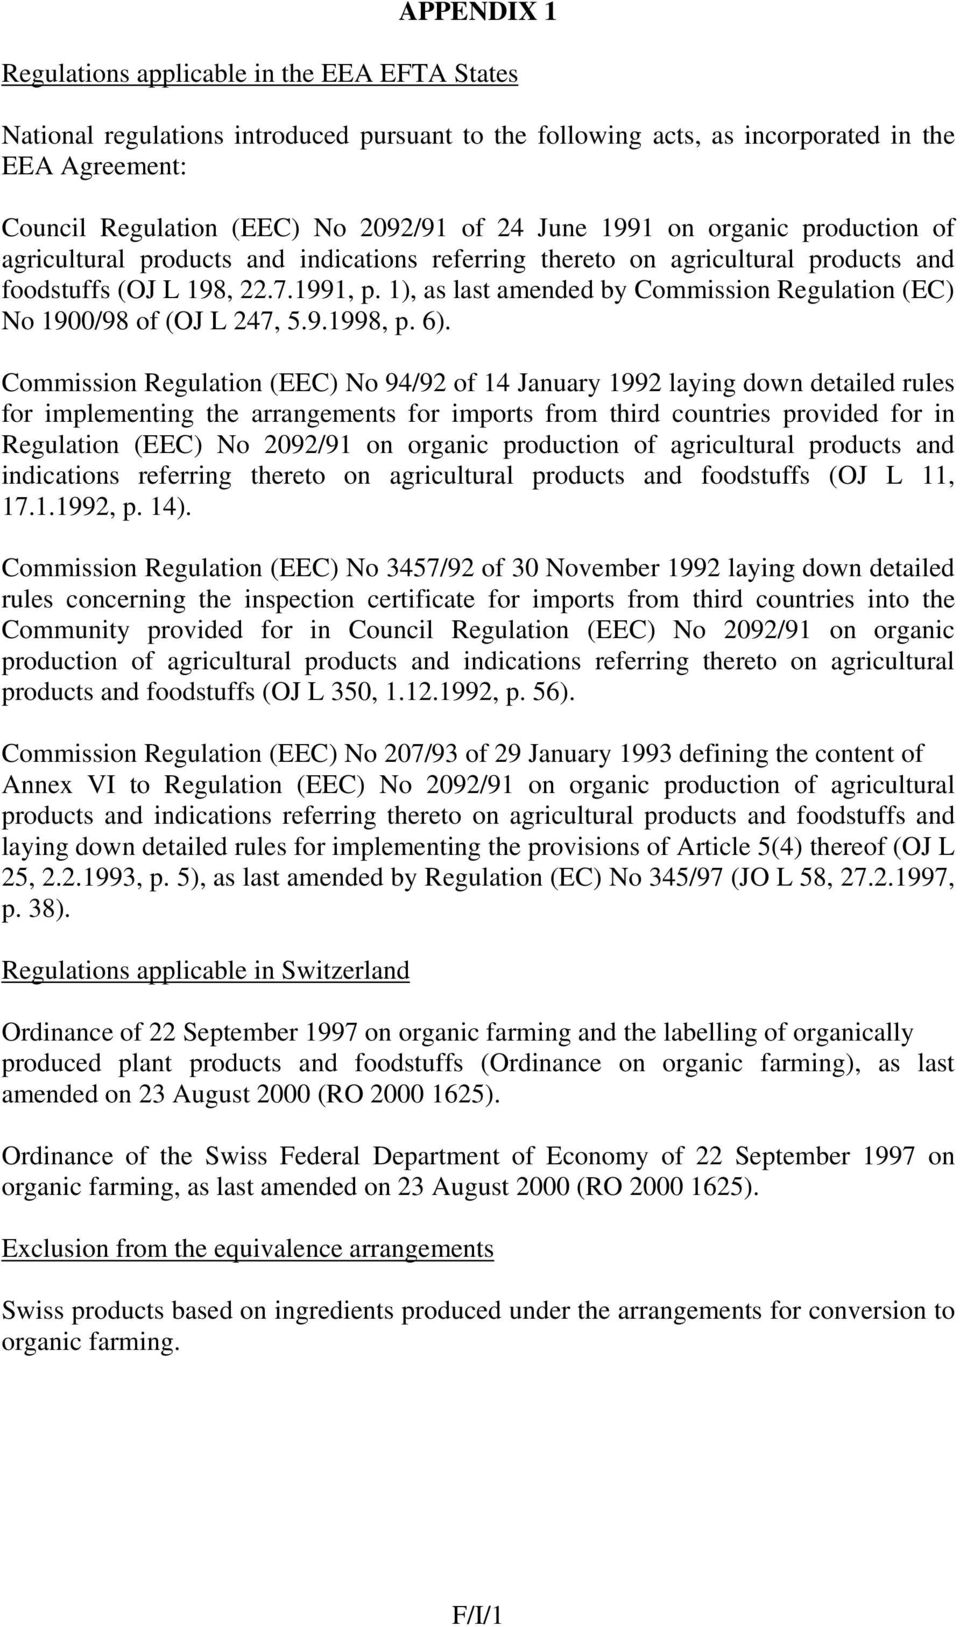 1), as last amended by Commission Regulation (EC) No 1900/98 of (OJ L 247, 5.9.1998, p. 6).